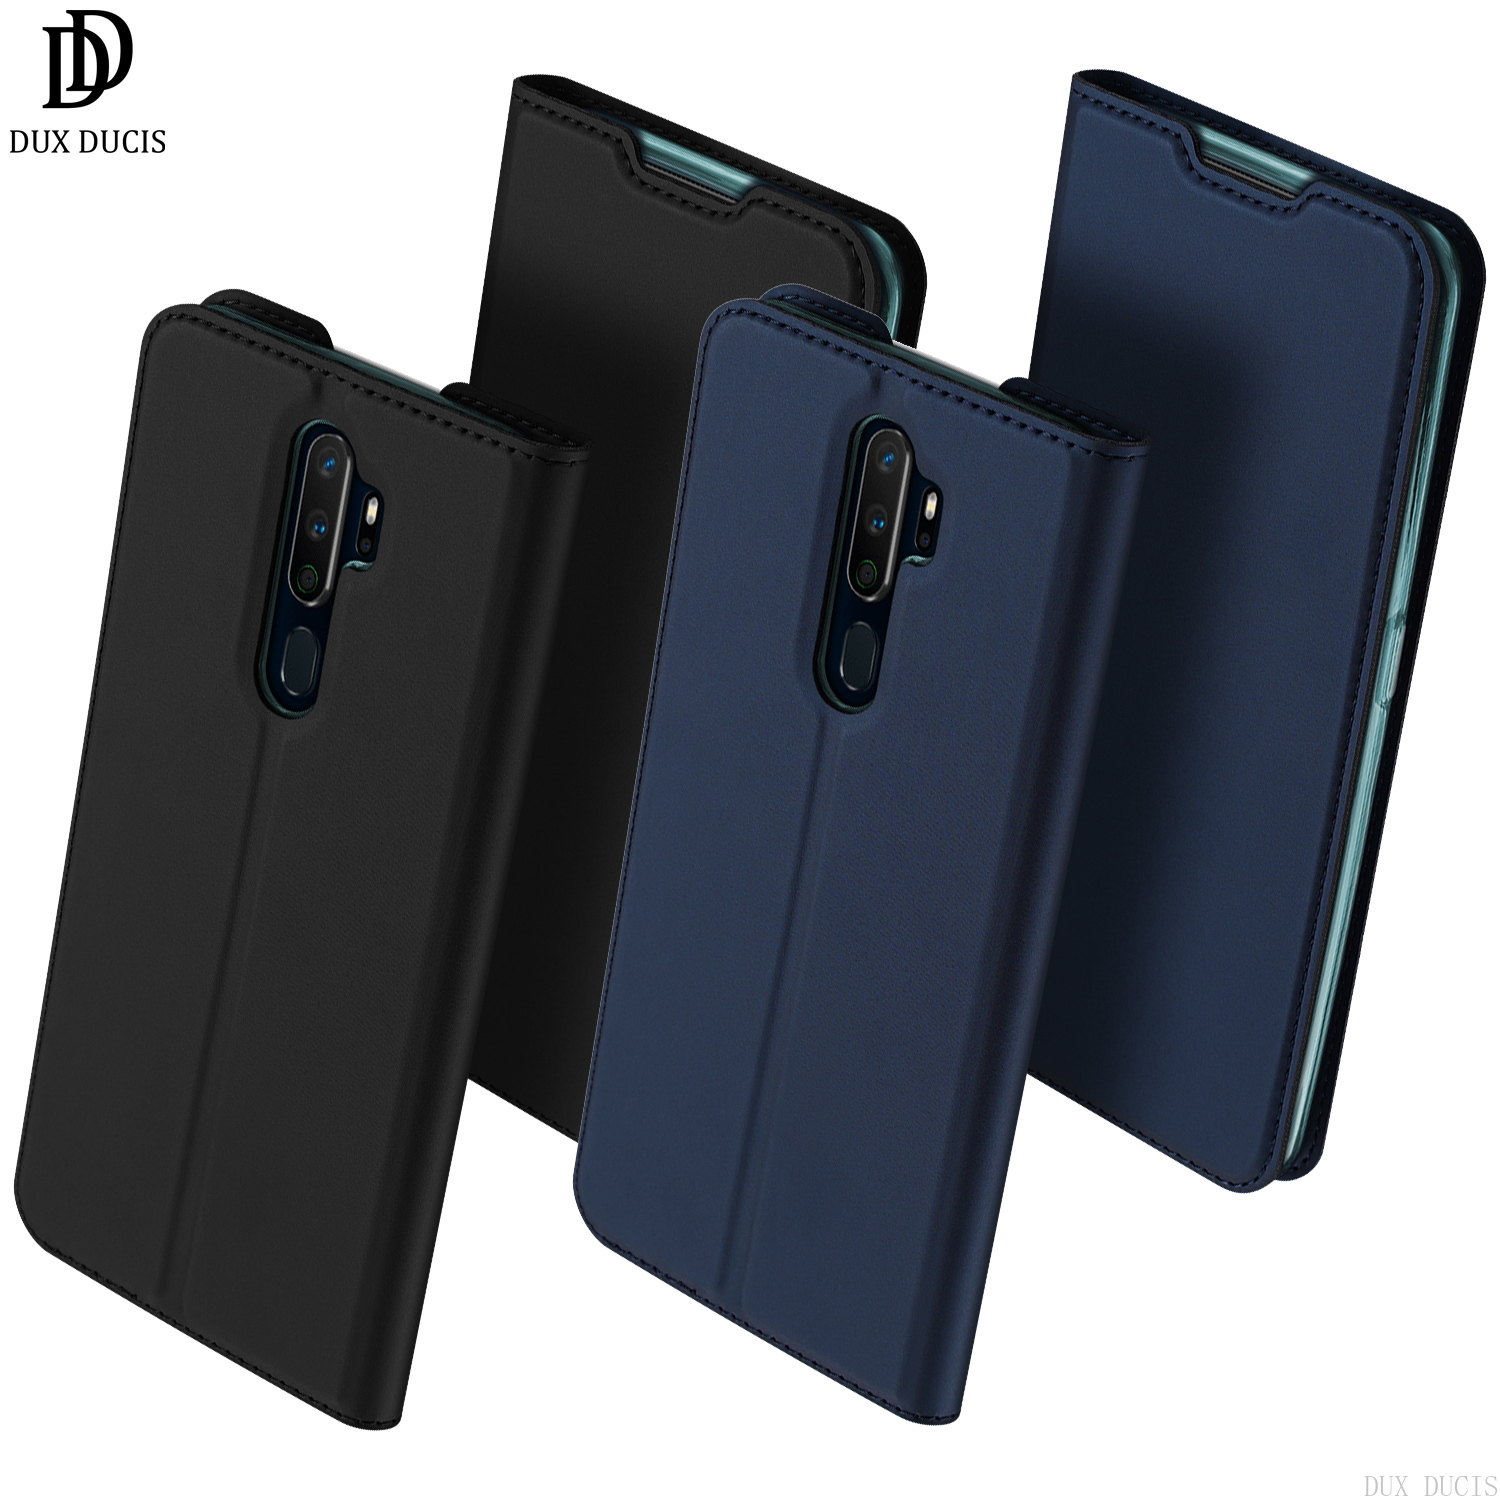 Dux Ducis Flip <font><b>Case</b></font> For <font><b>OPPO</b></font> A9 2020 & <font><b>A5</b></font> 2020 Card Slot Holder <font><b>Wallet</b></font> Stand Cover TPU Soft Bumper Protective Anti-knock <font><b>Case</b></font> image